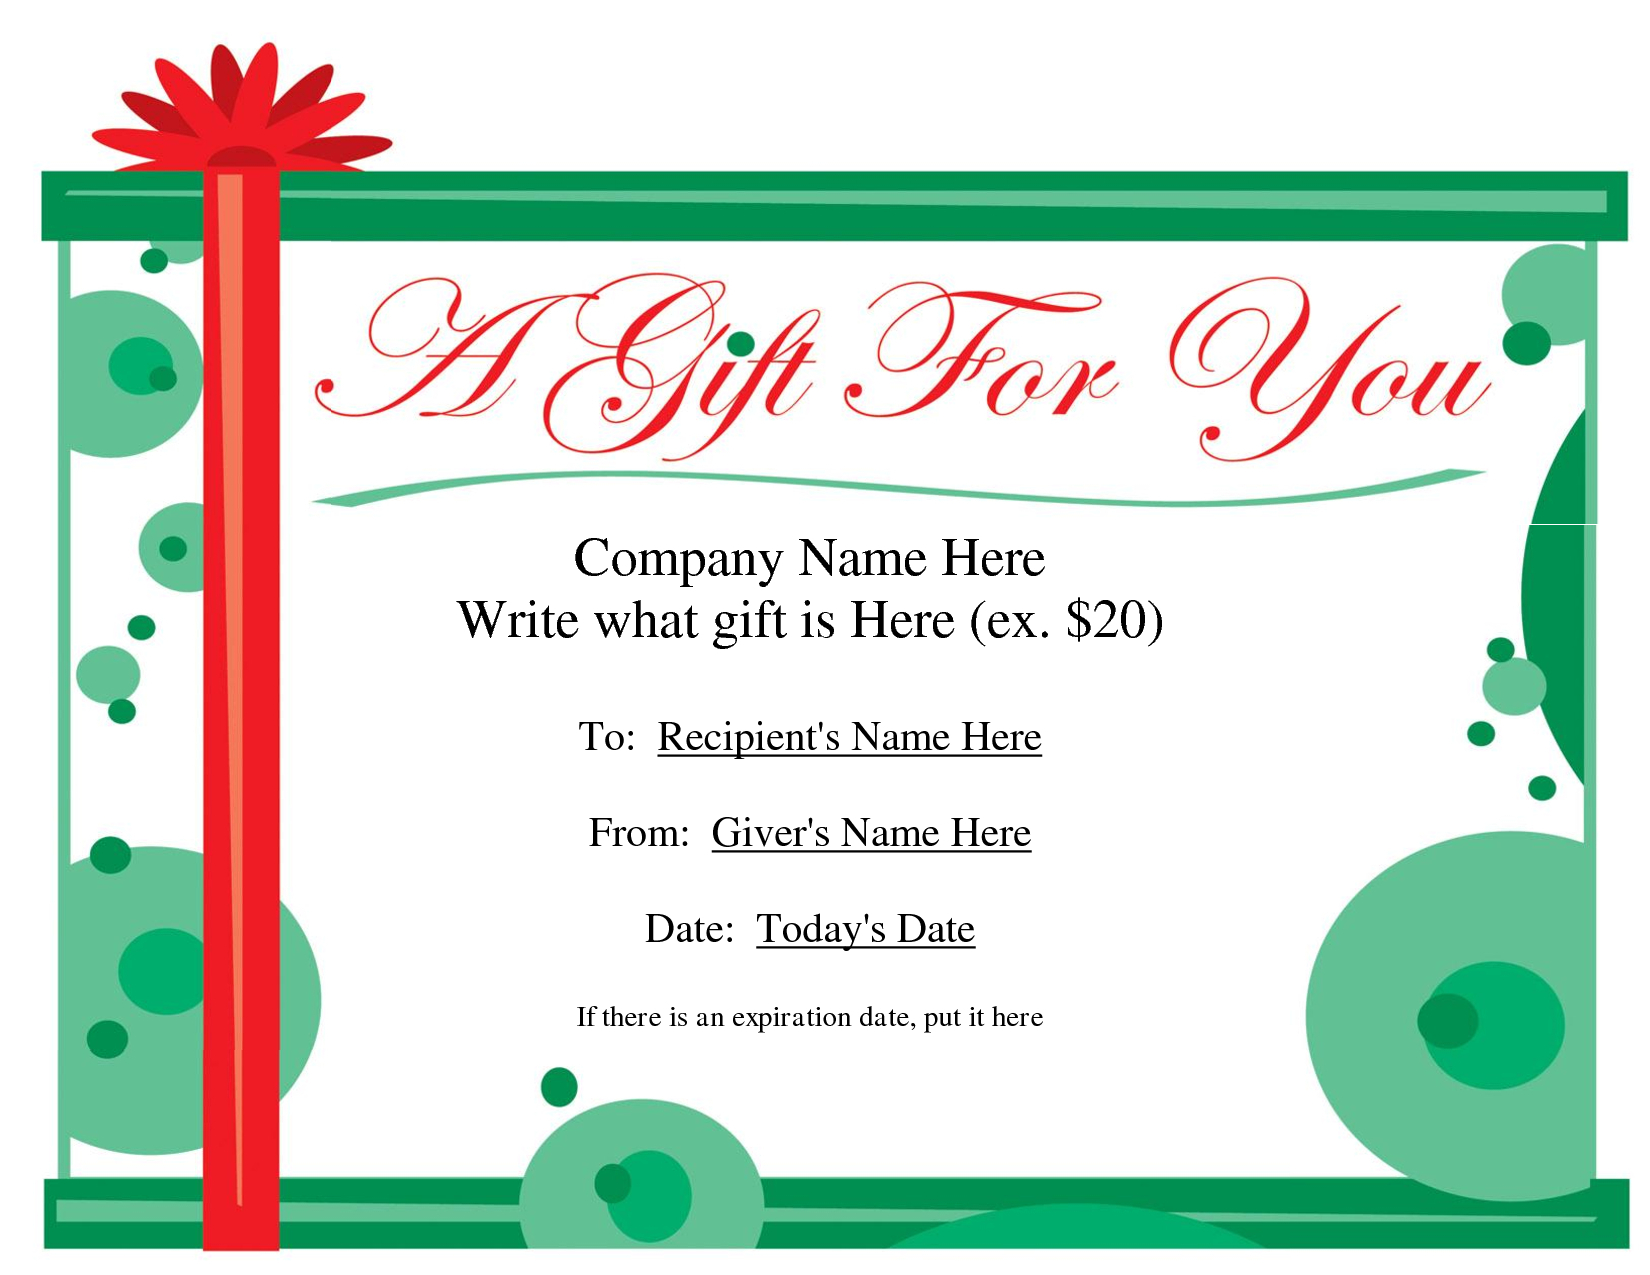 Free Christmas Gift Certificate Templates   Ideas For The House - Free Printable Gift Cards